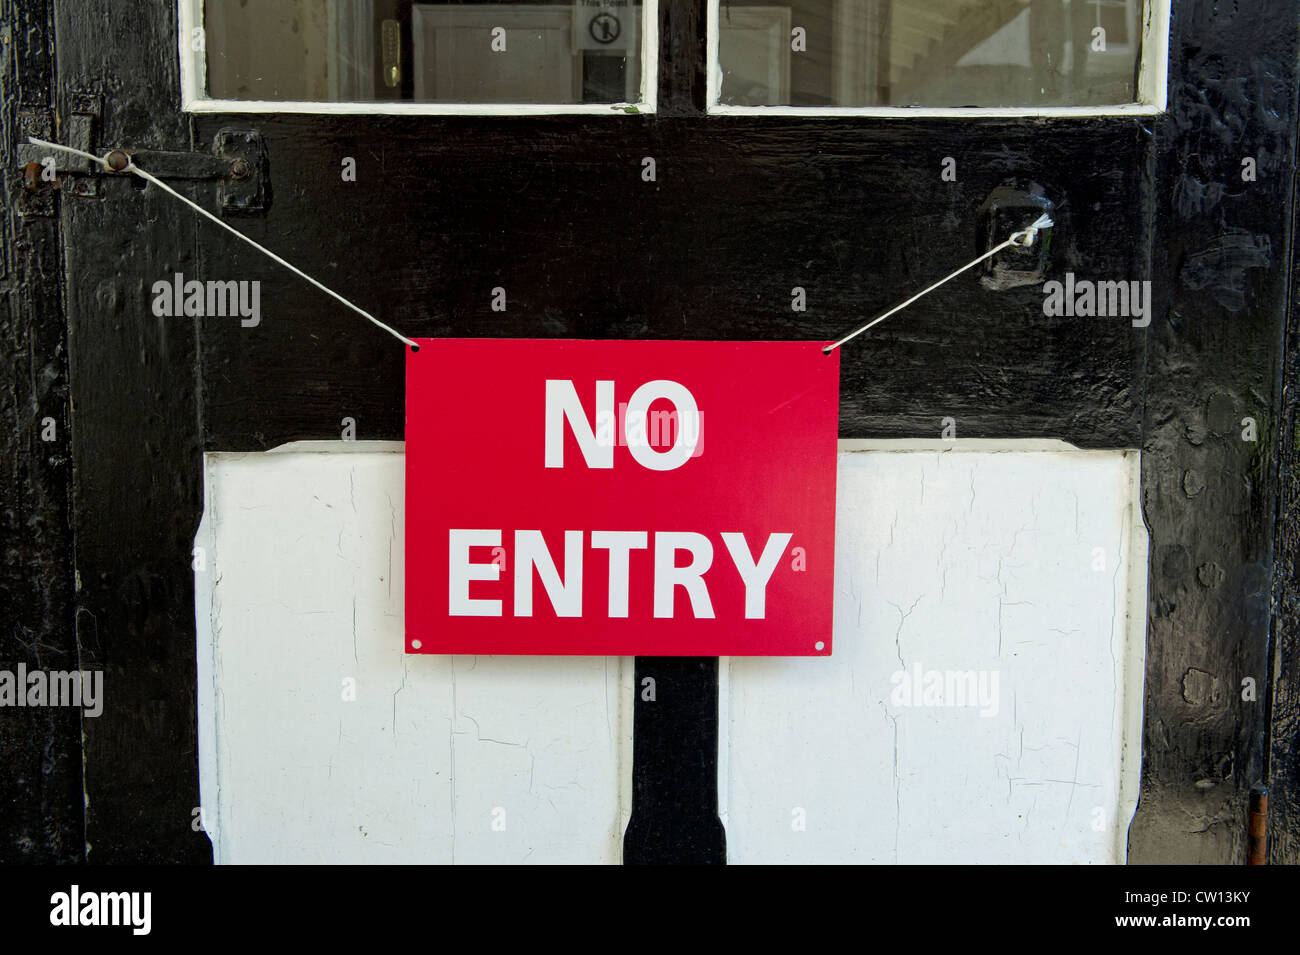 No entry sign hanging on door - Stock Image